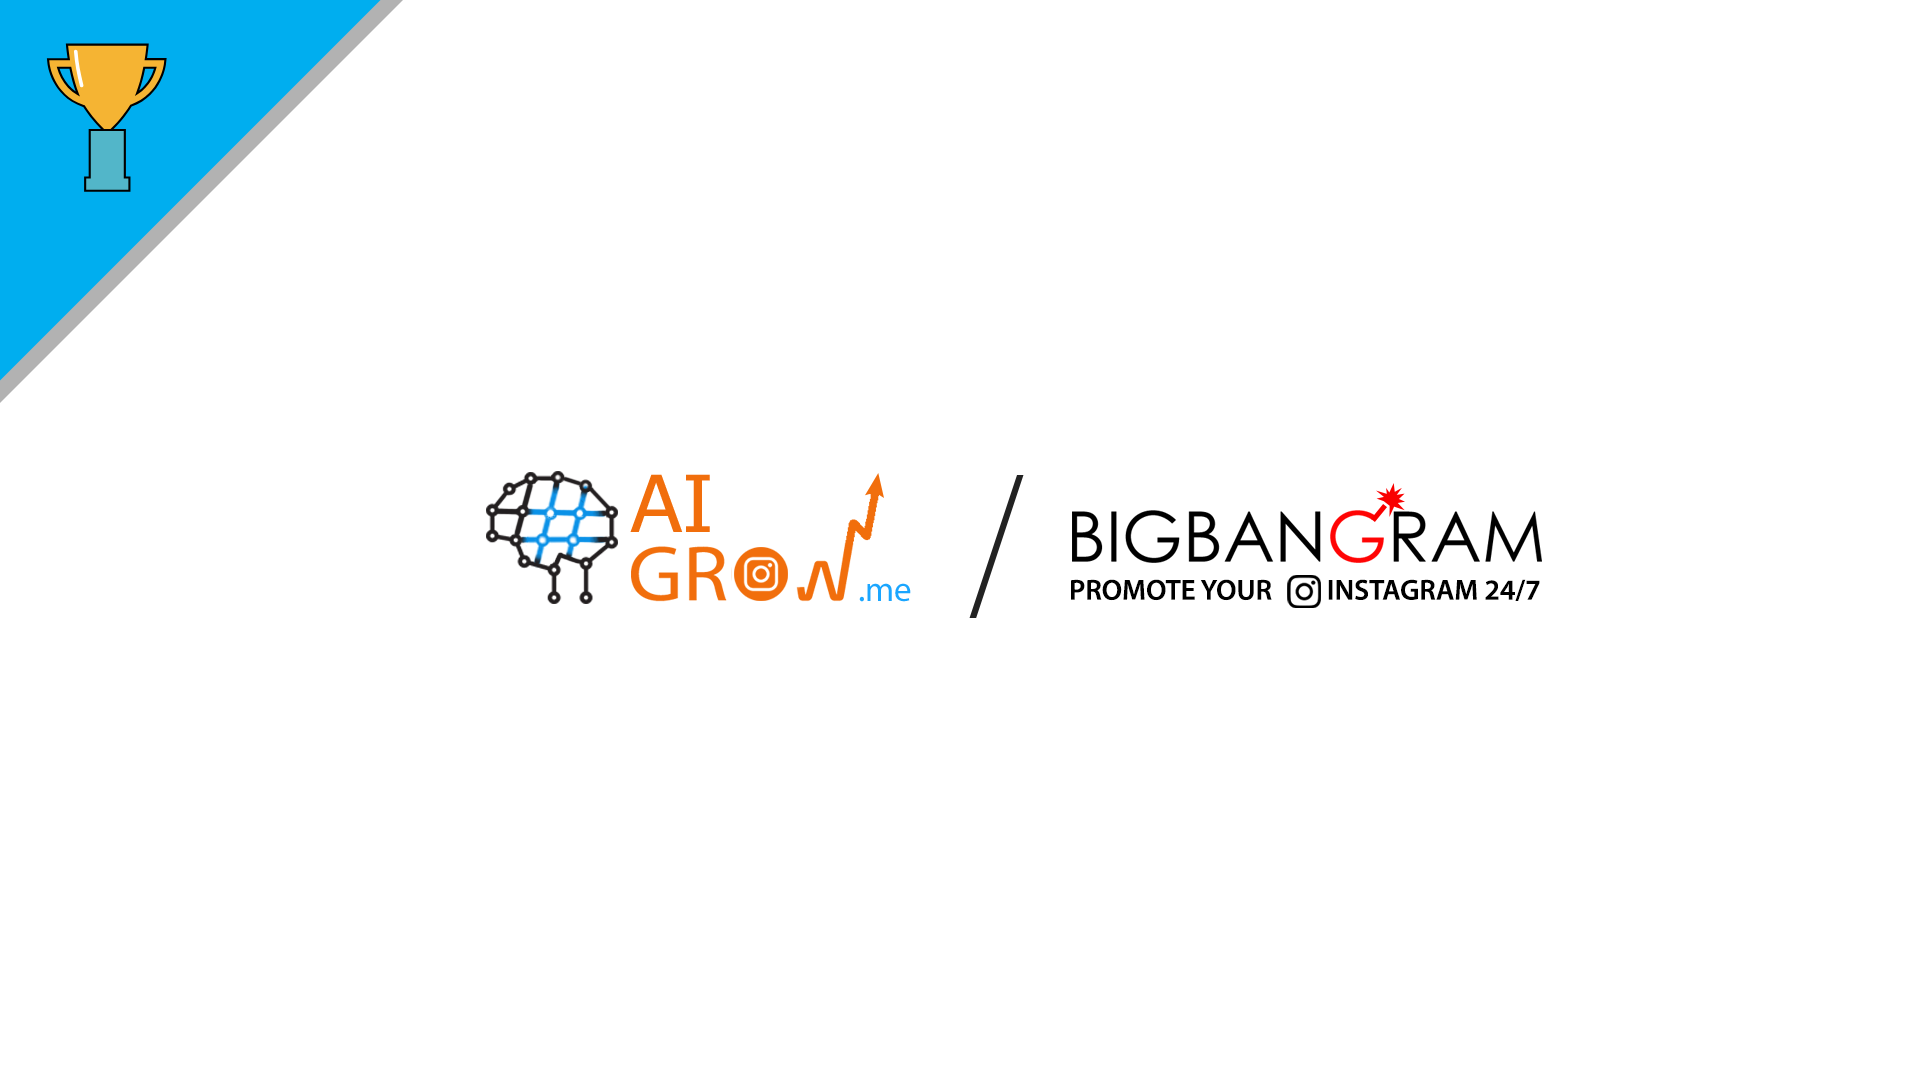 BigBangram vs. AiGrow – what's a better Instagram automation platform?